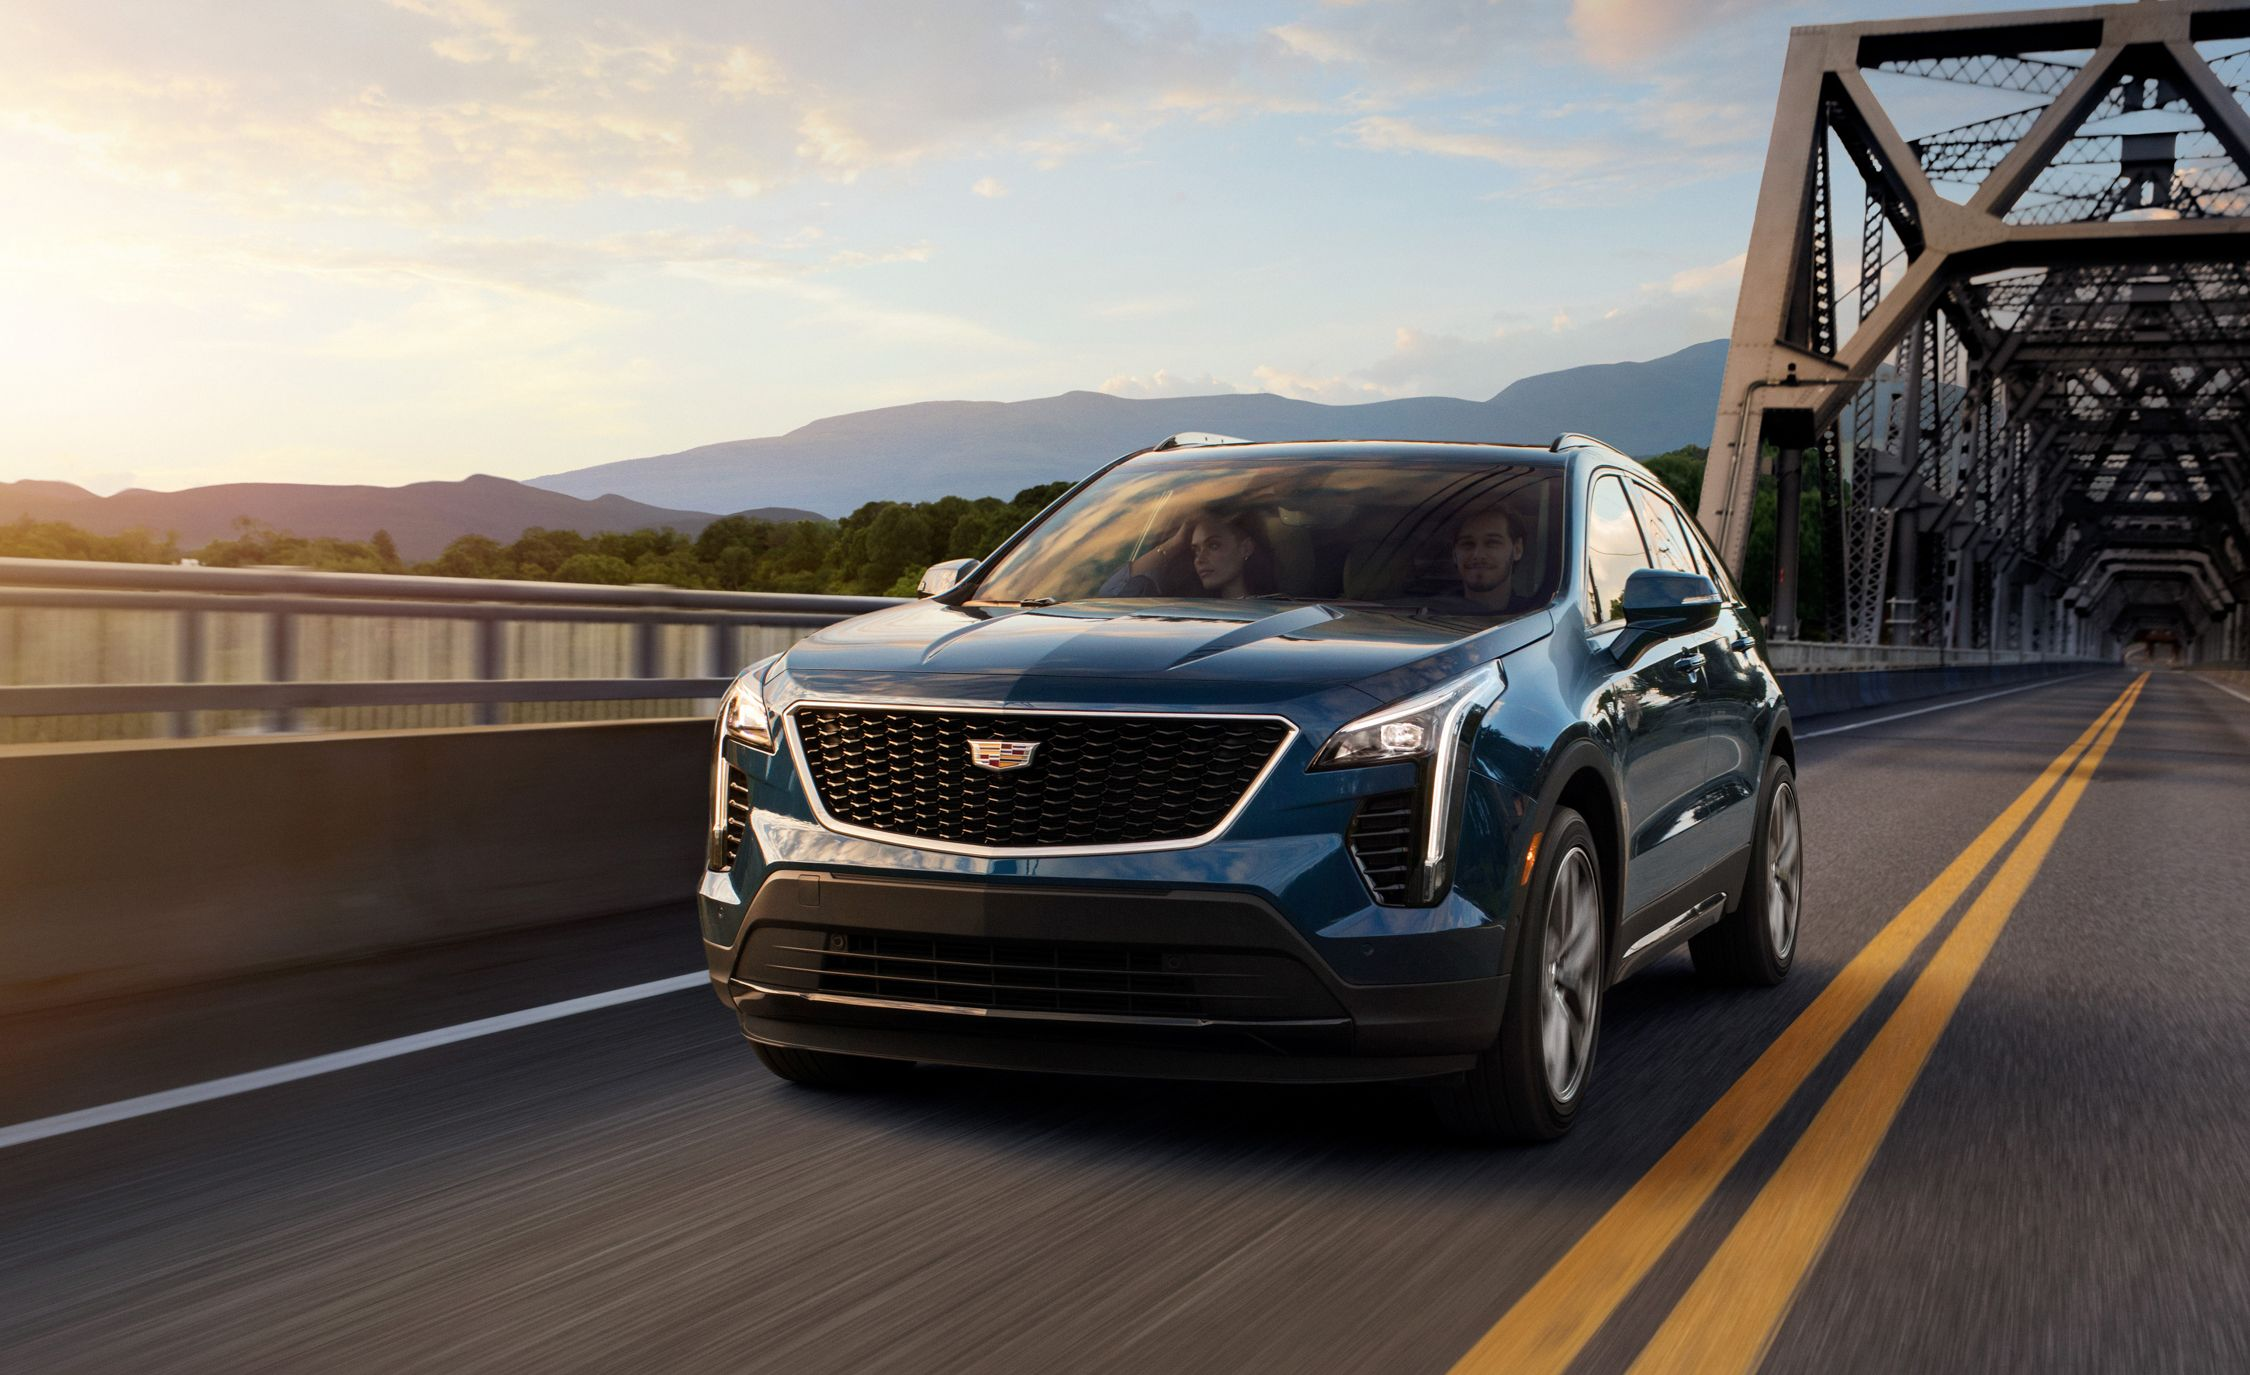 2020 Cadillac XT4 Review, Pricing, and Specs